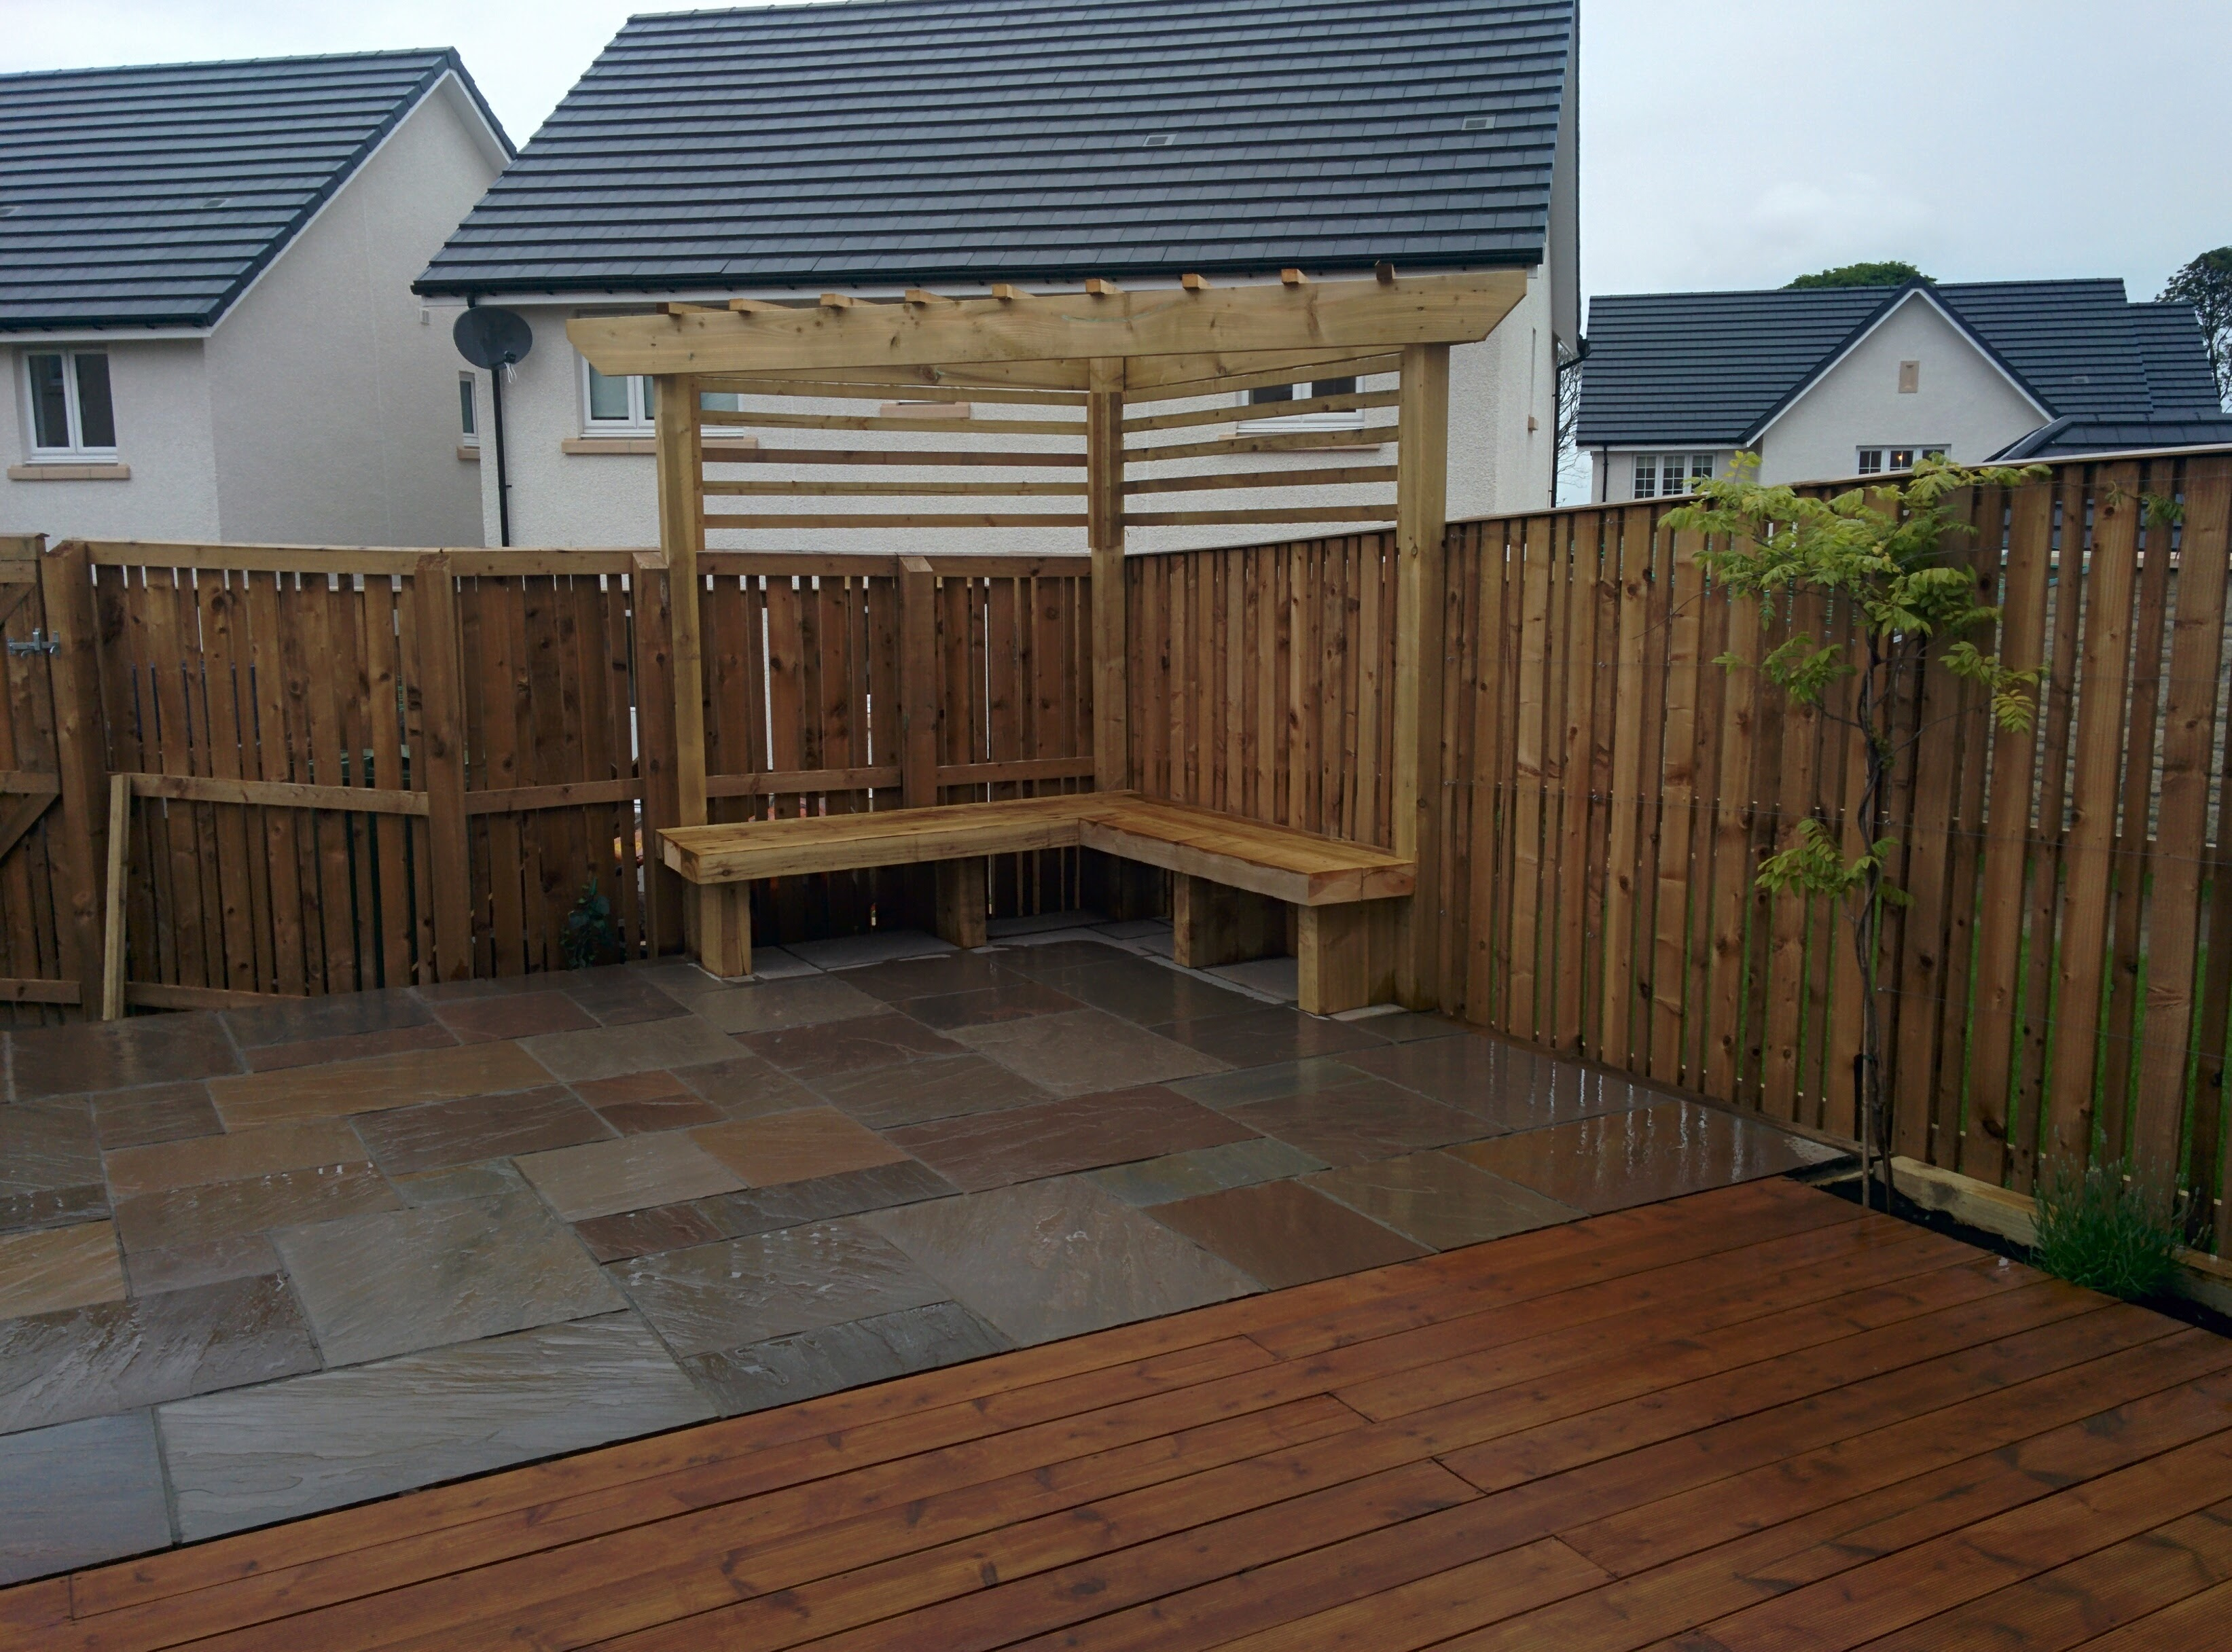 Decking and patio the garden construction companythe for Garden decking companies